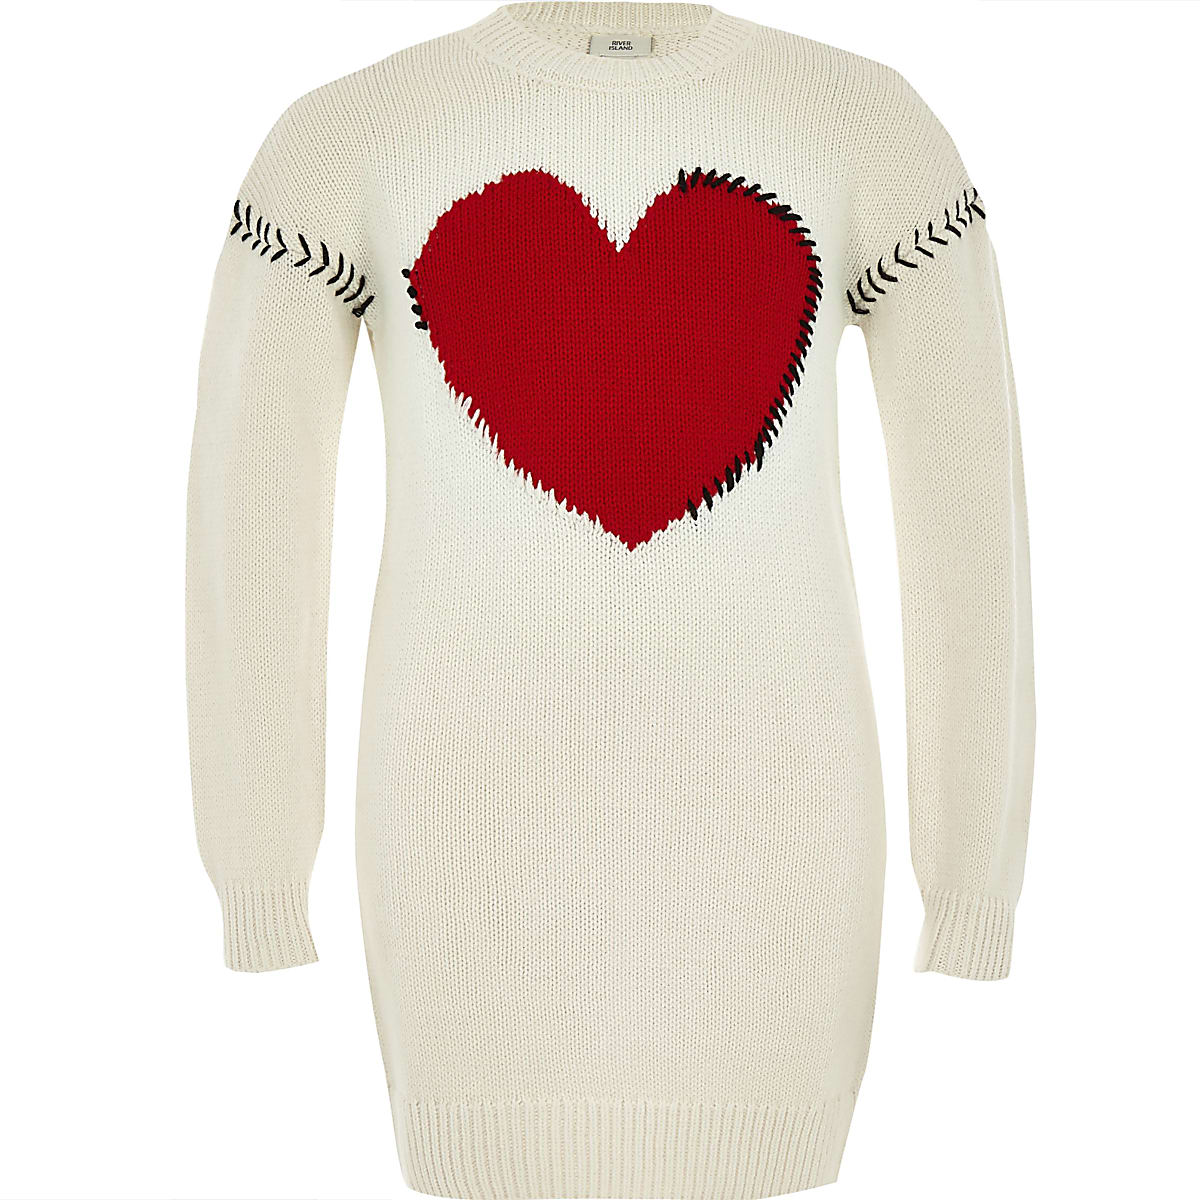 Girls cream knit heart sweater dress